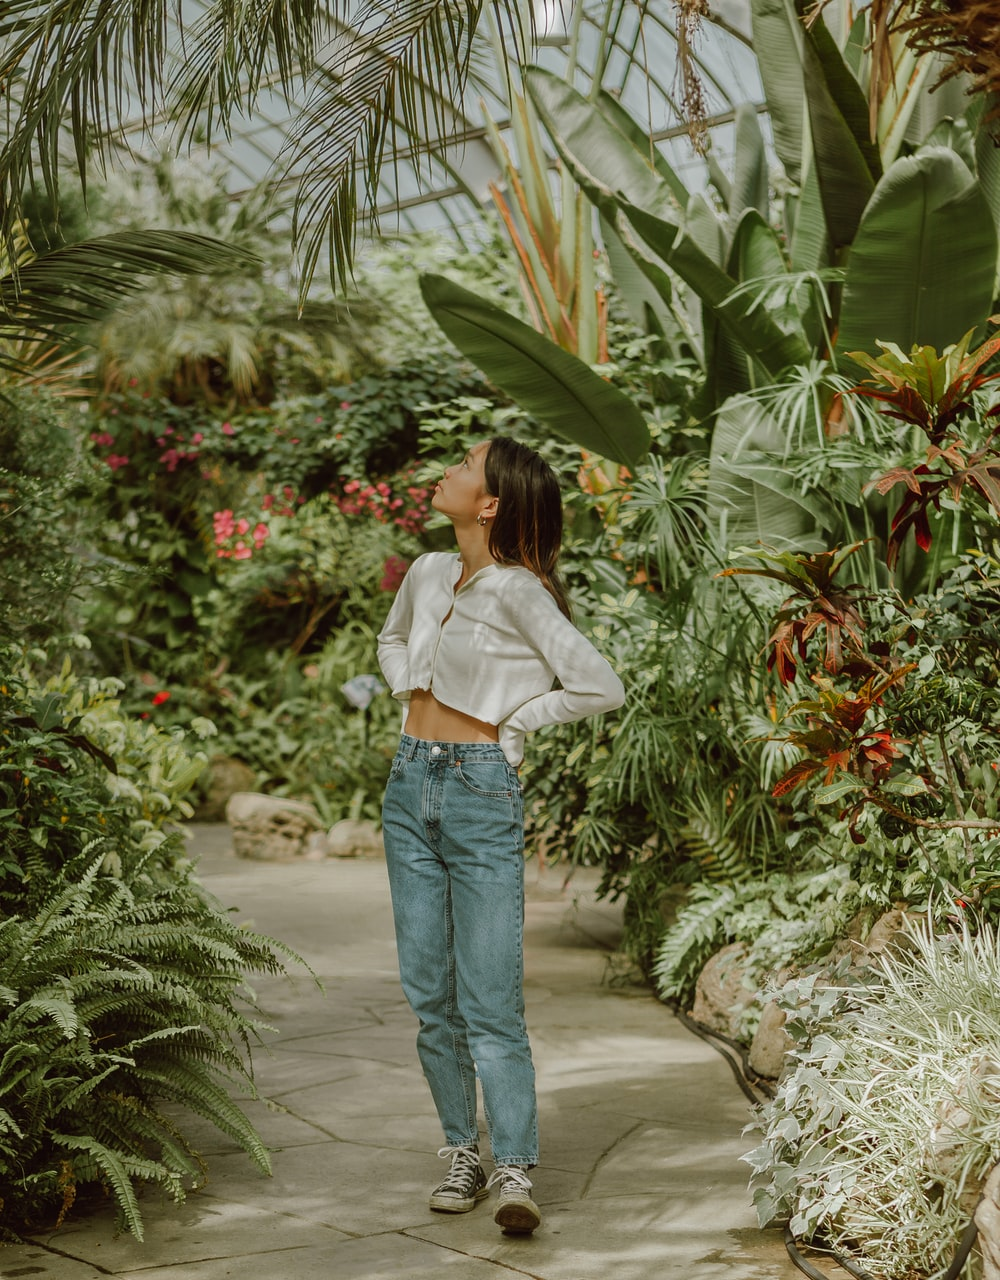 woman in white shirt and blue denim jeans standing near green plants during daytime